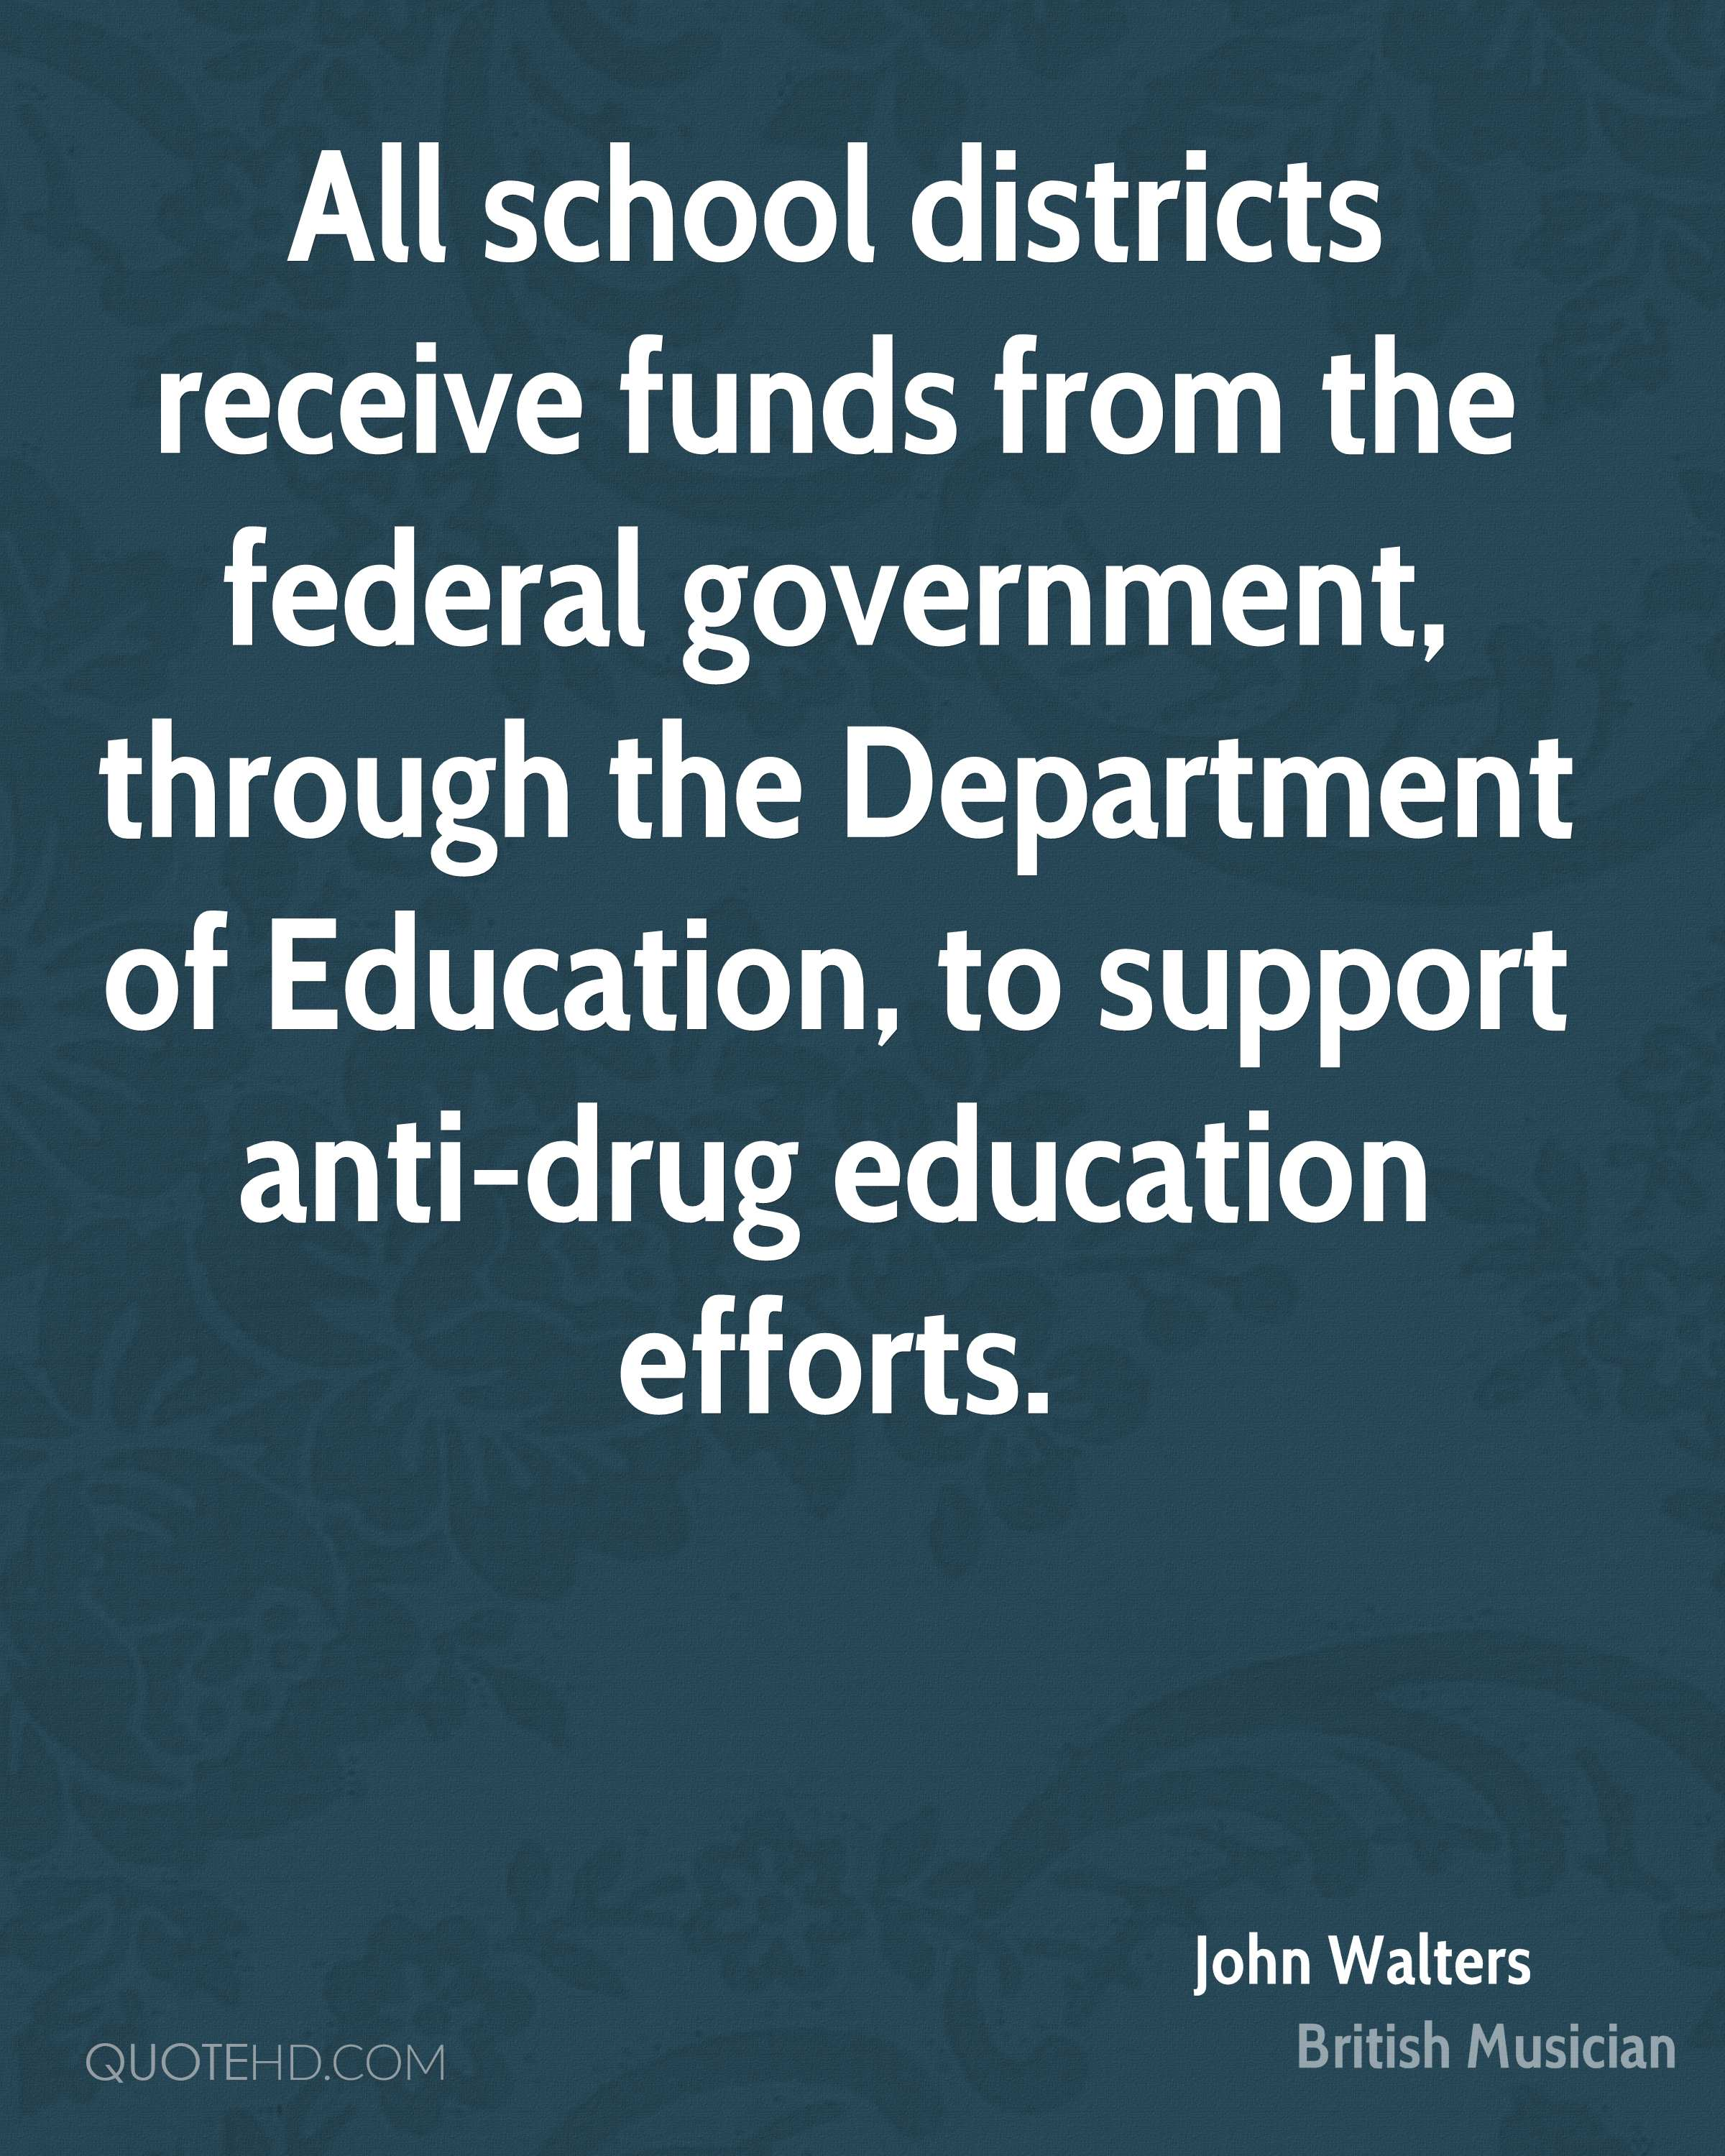 All school districts receive funds from the federal government, through the Department of Education, to support anti-drug education efforts.